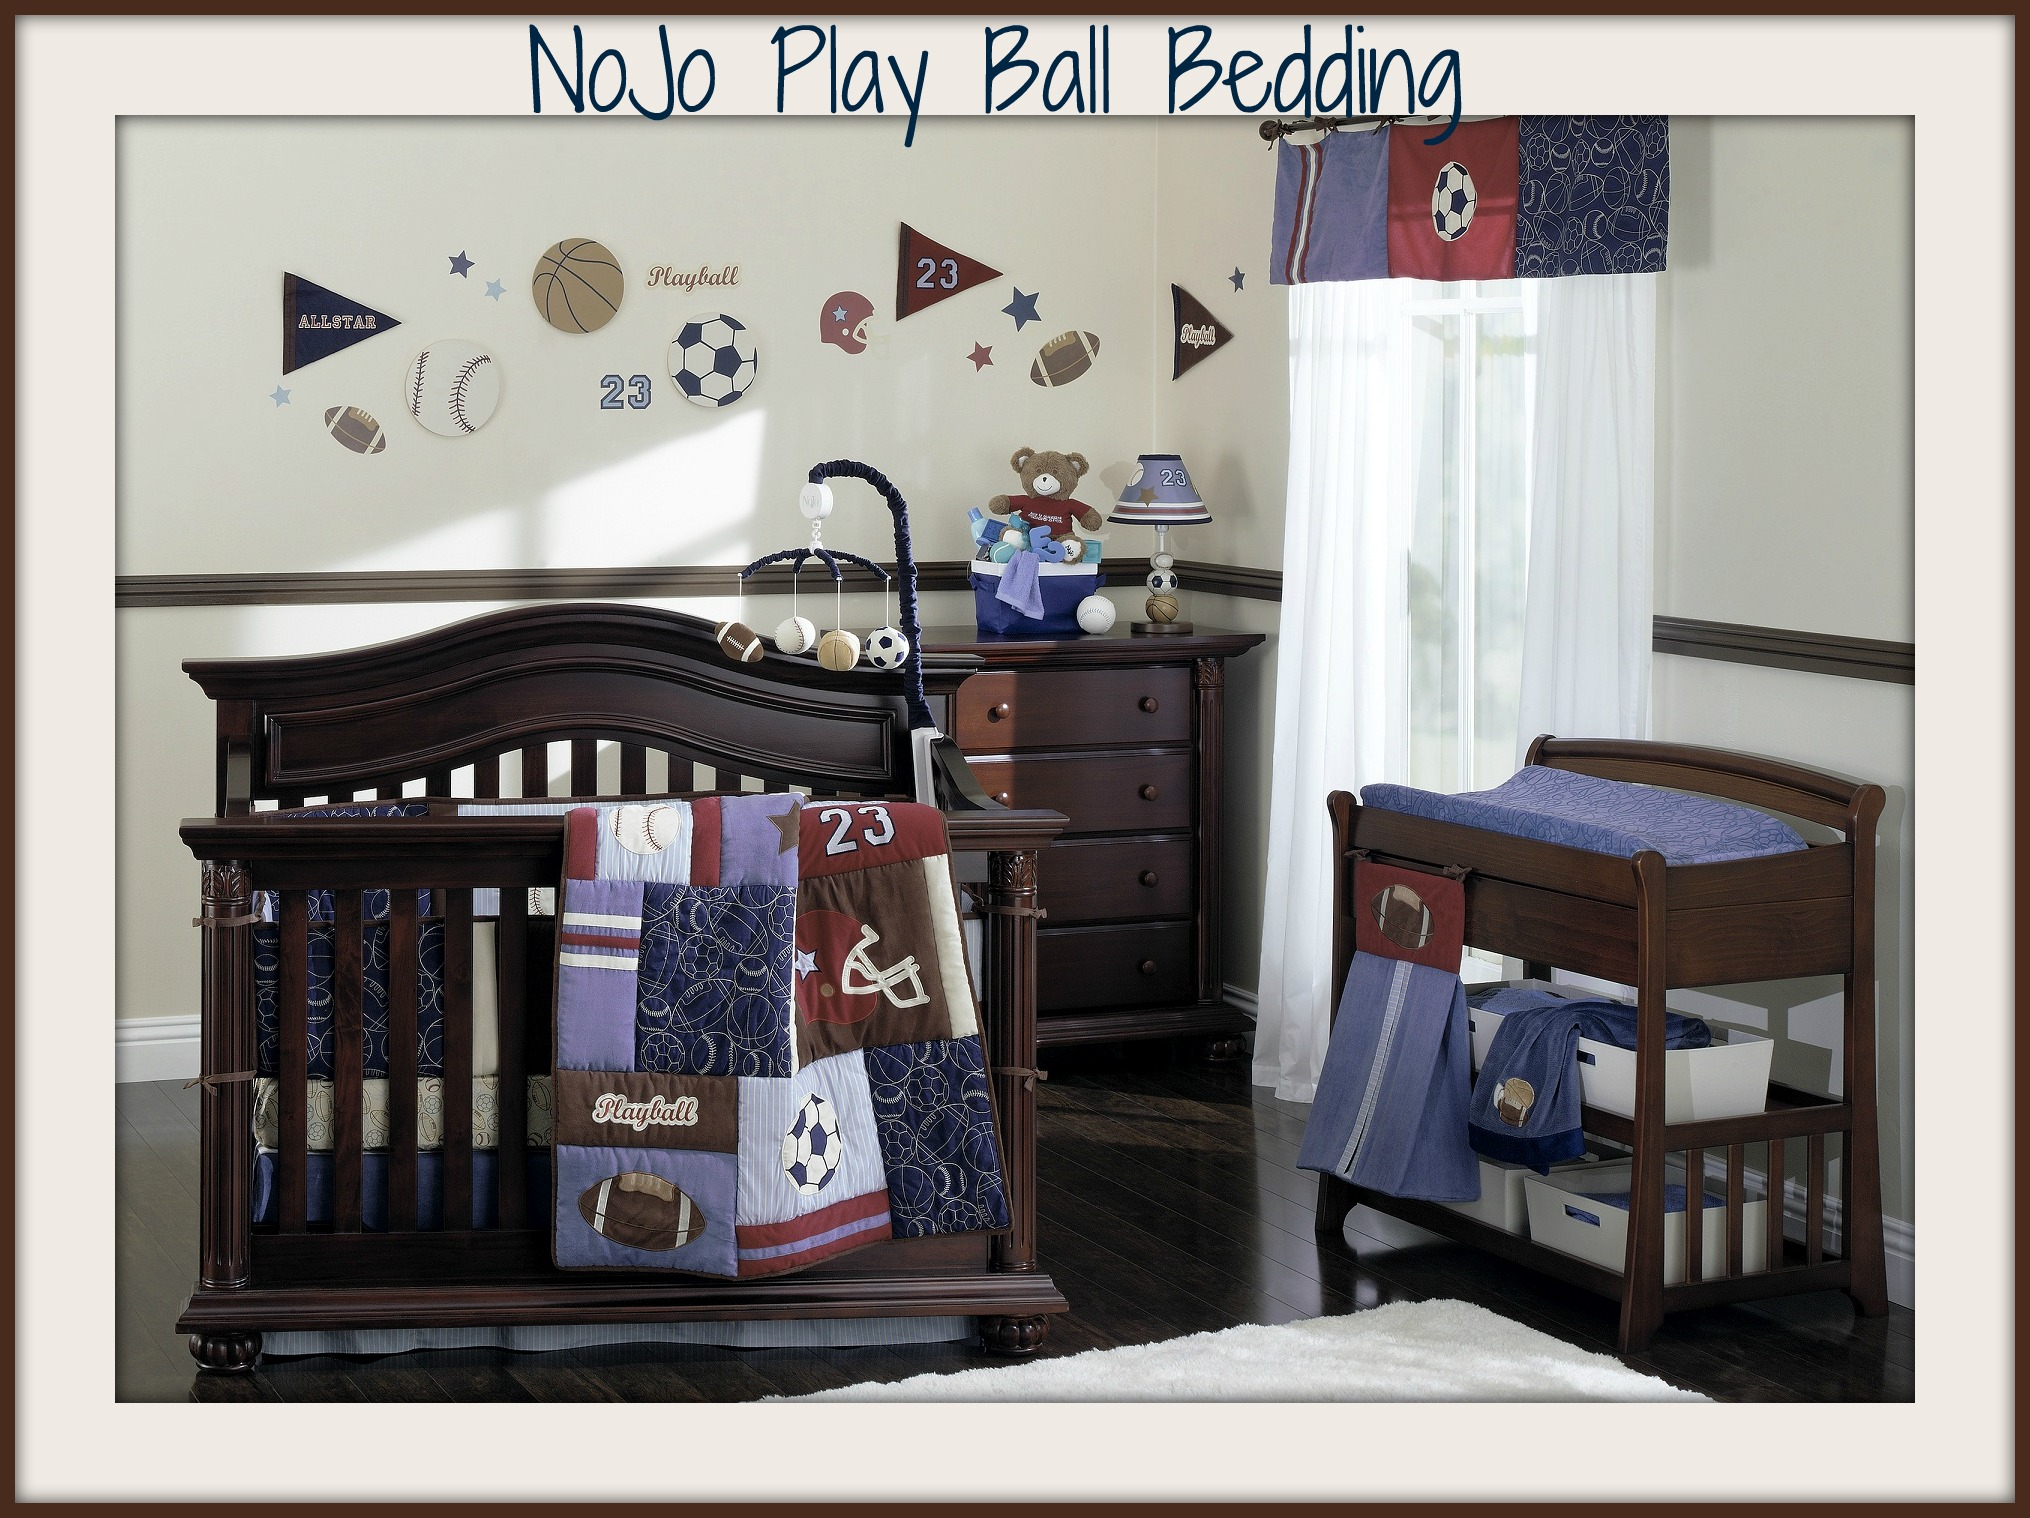 Nojo Play Ball Crib Bedding Set